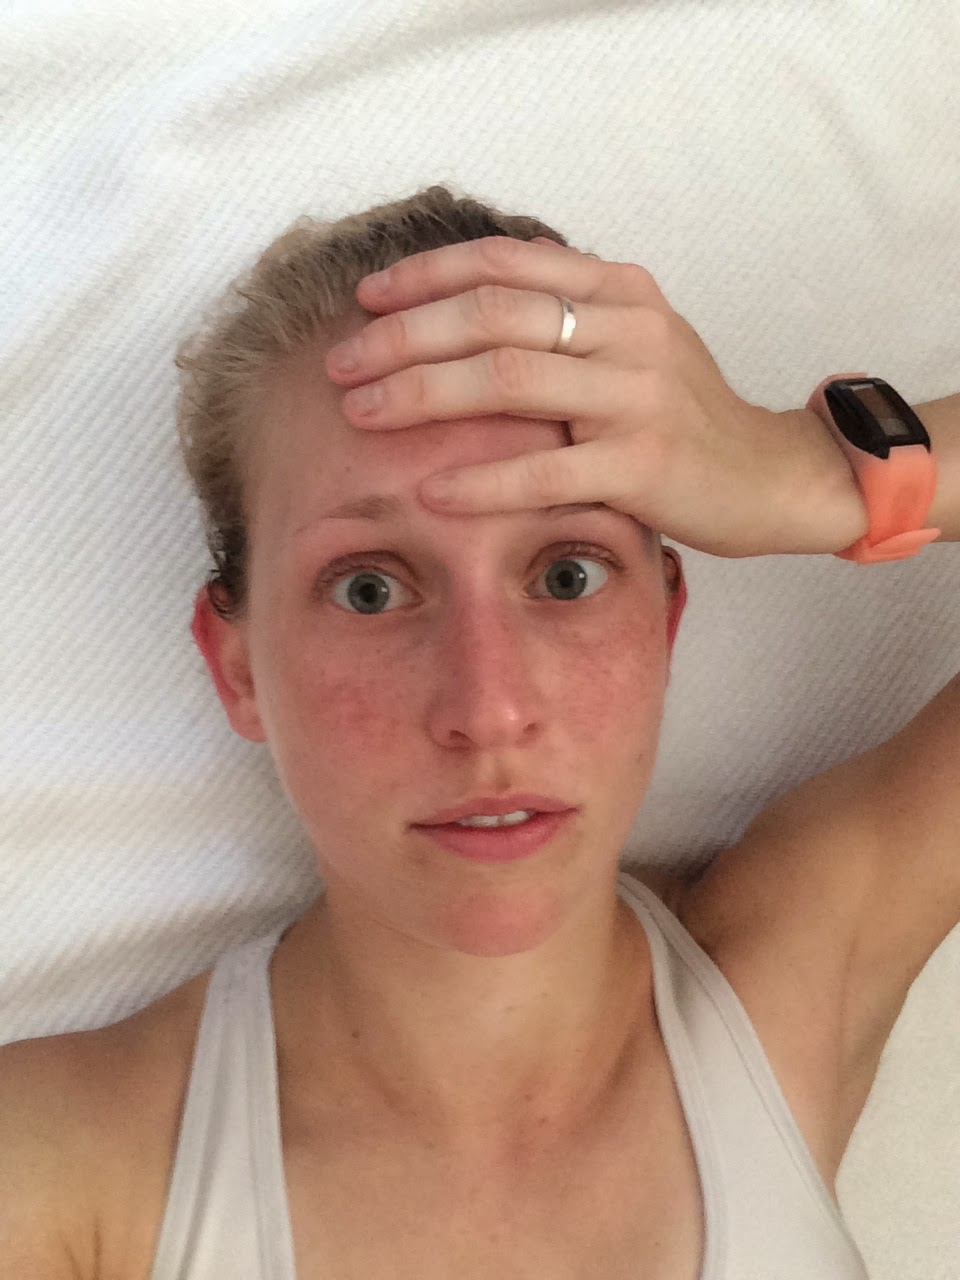 Struggle city post- hot and humid run